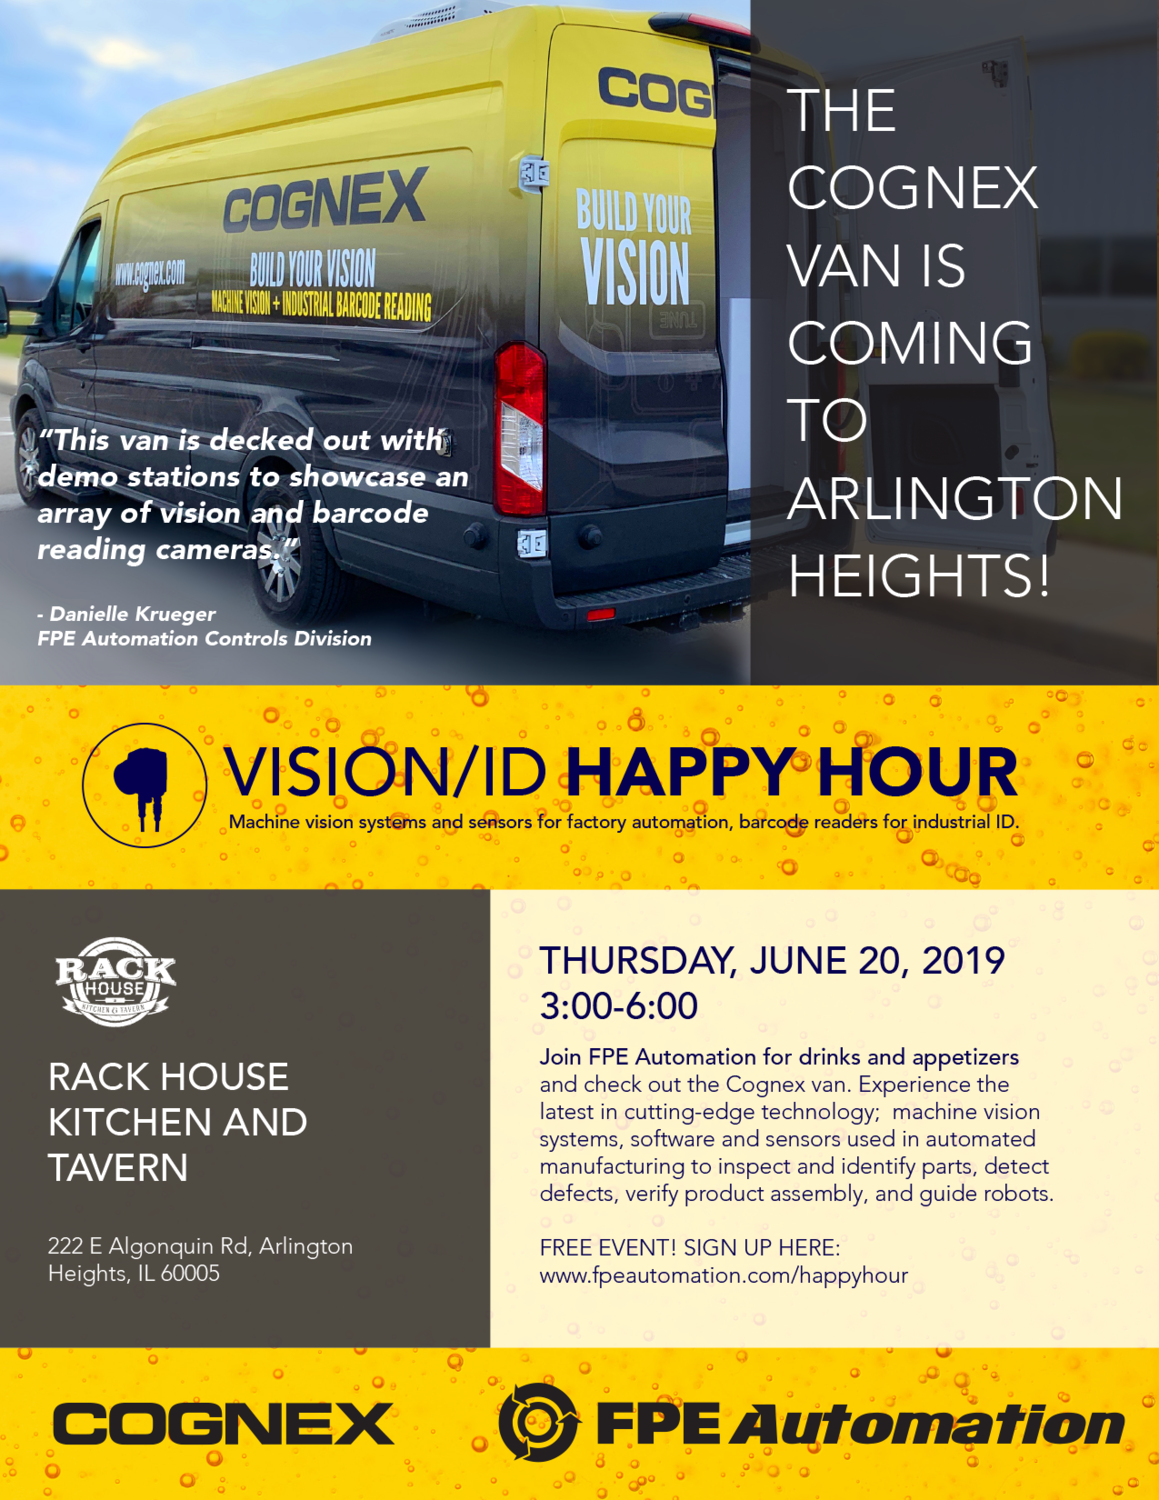 Vision/ID Happy Hour & Cognex Van at the Rack House